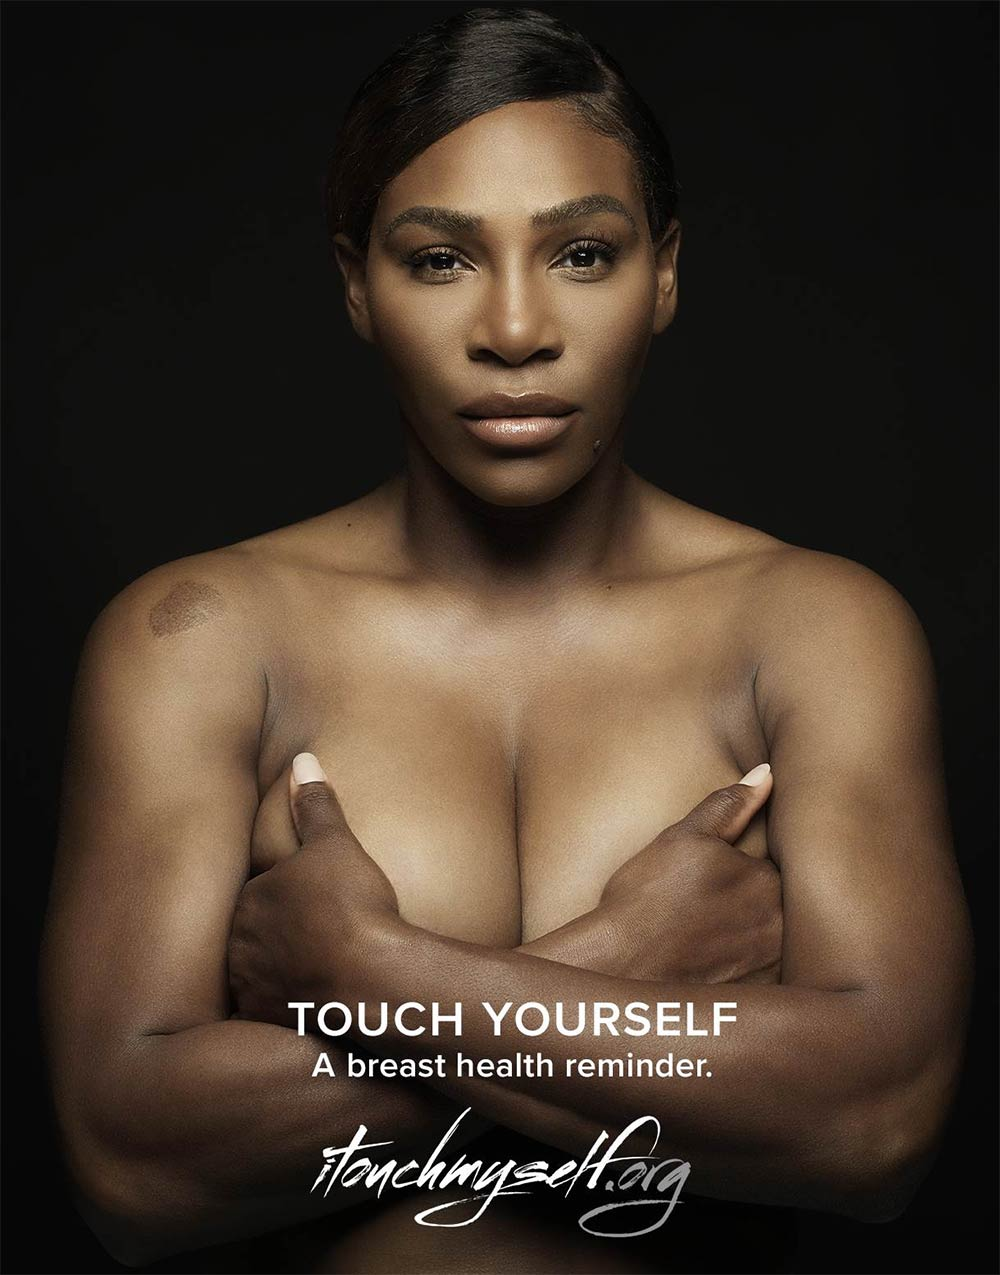 Serena Williams Covers I Touch Myself In Breast Cancer Awareness Month Music Video